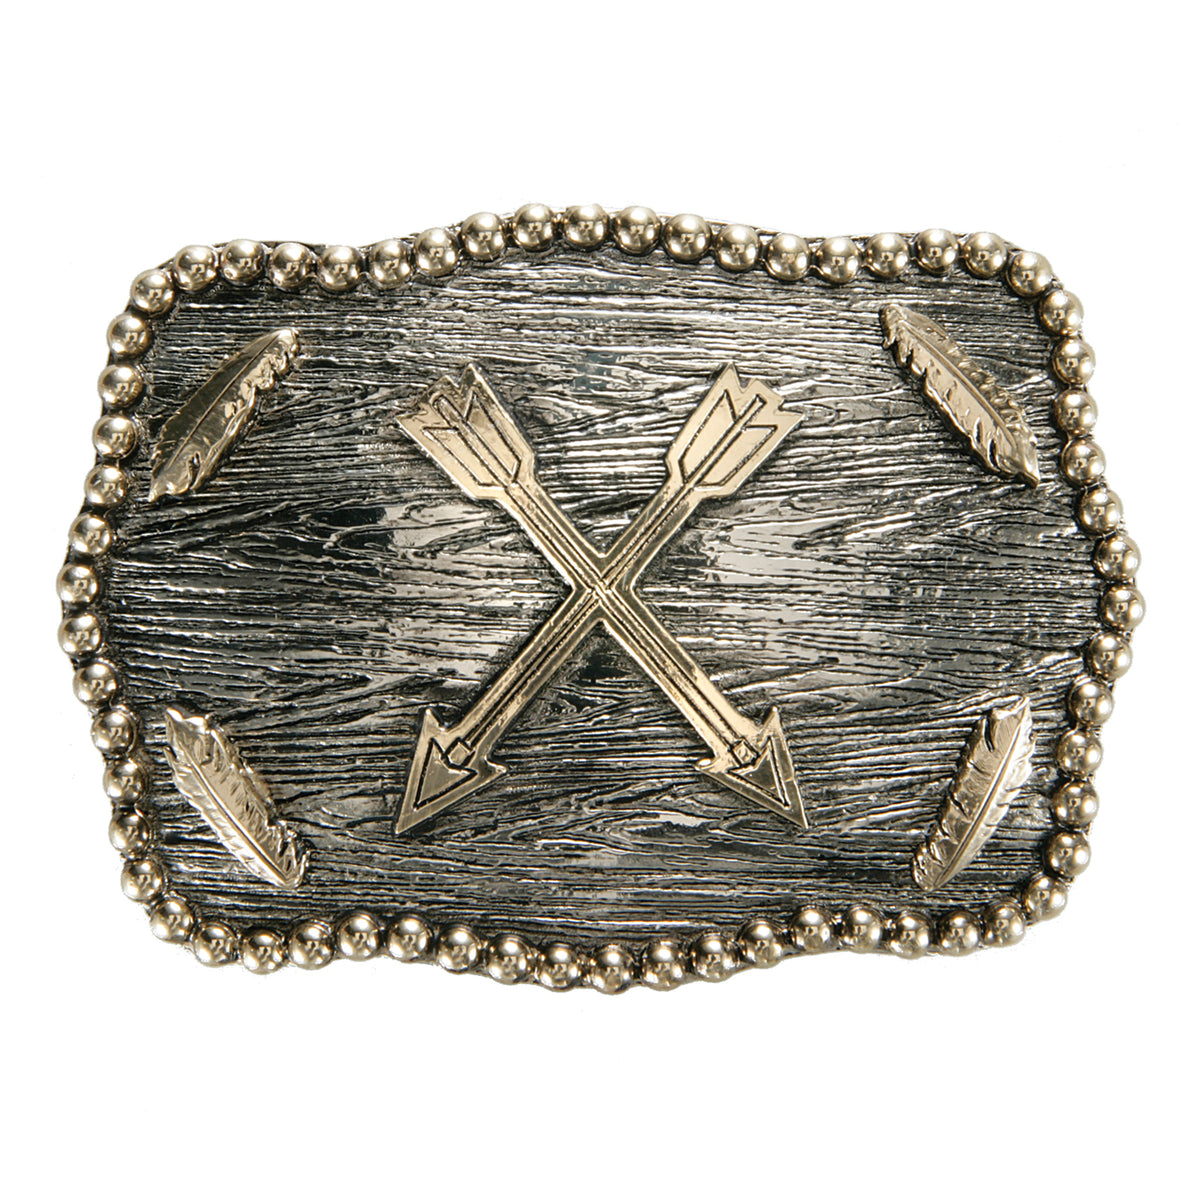 Crossed Arrows with Feathers Iconic Classic Buckle